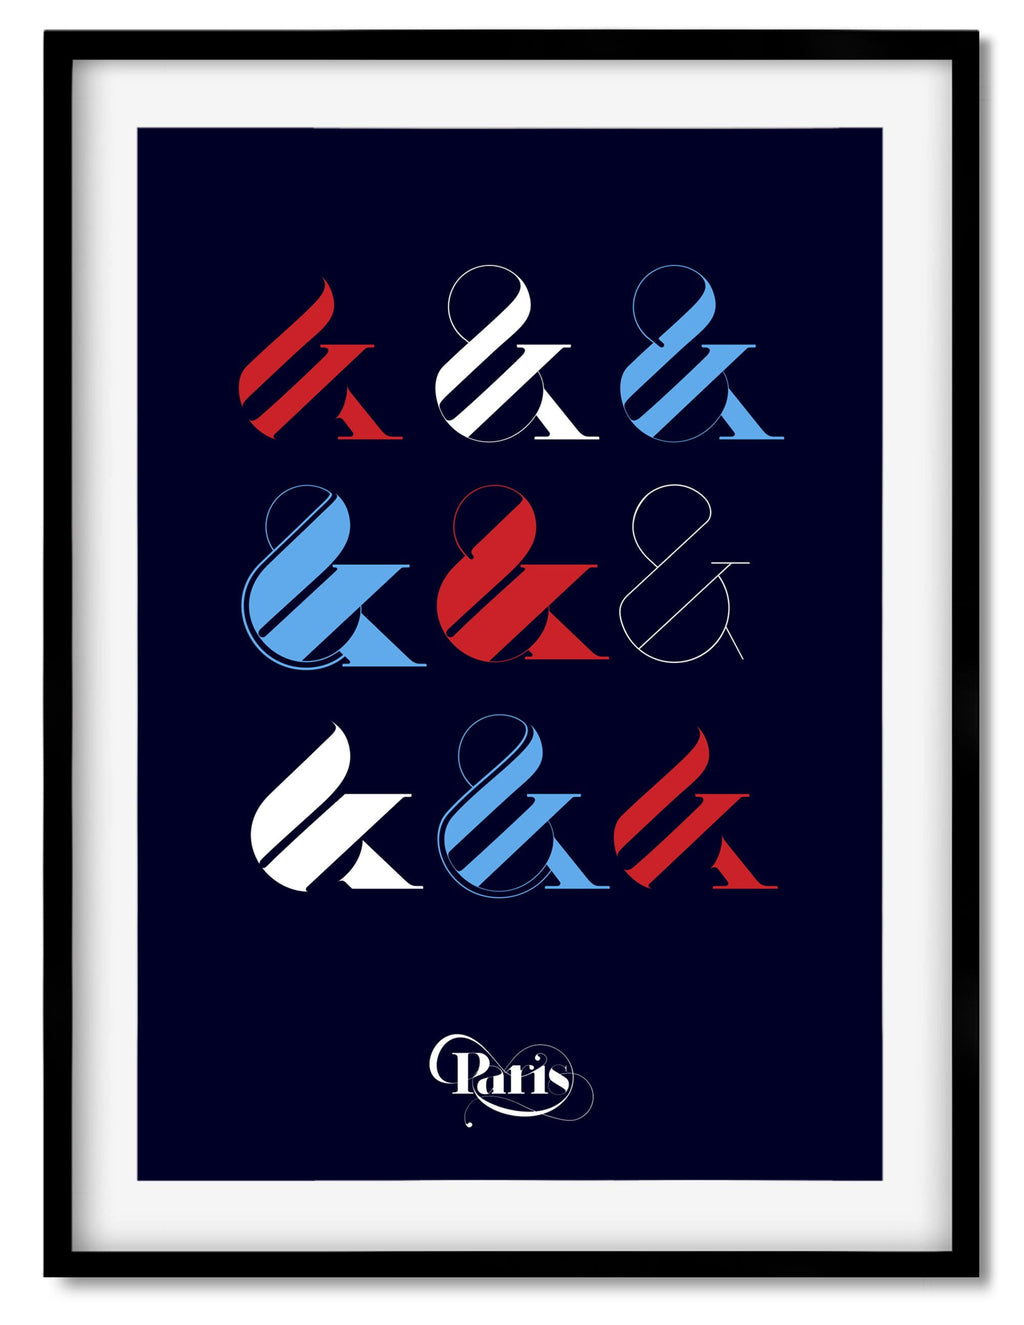 Paris Typeface ampersand collection poster by Moshik Nadav Typography